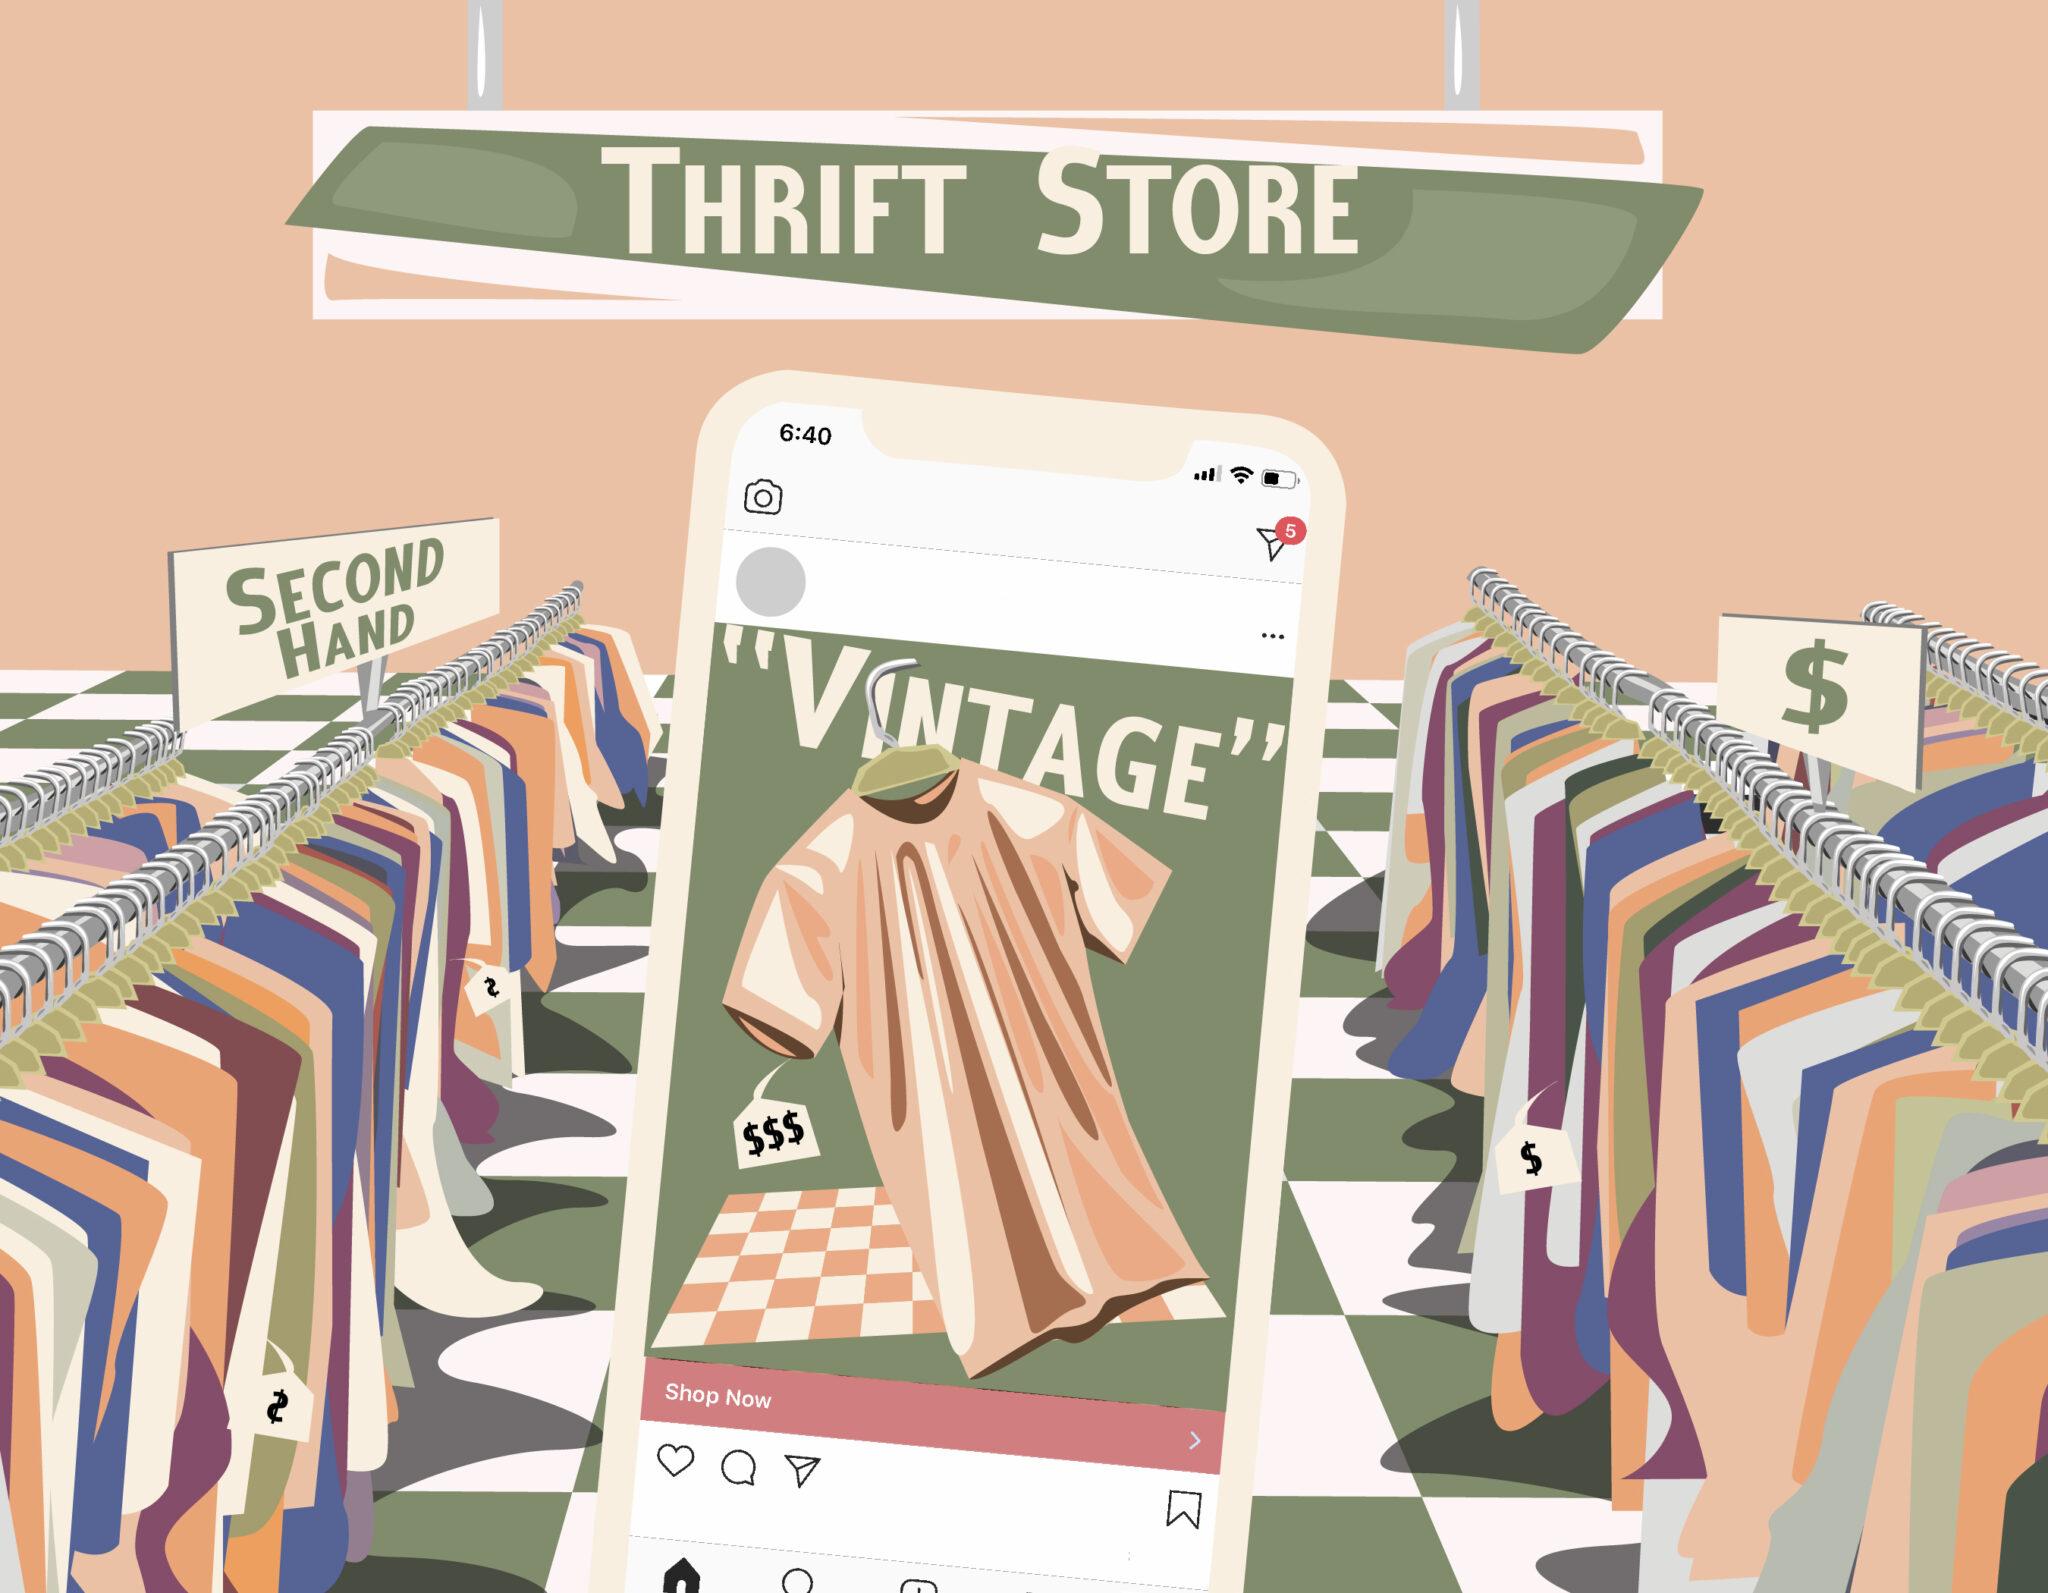 """Illustration of a phone featuring an Instagram post of a tee shirt labelled """"Vintage"""" with a high price tag. The background depicts a thrift store with racks of lower price, second hand clothing."""